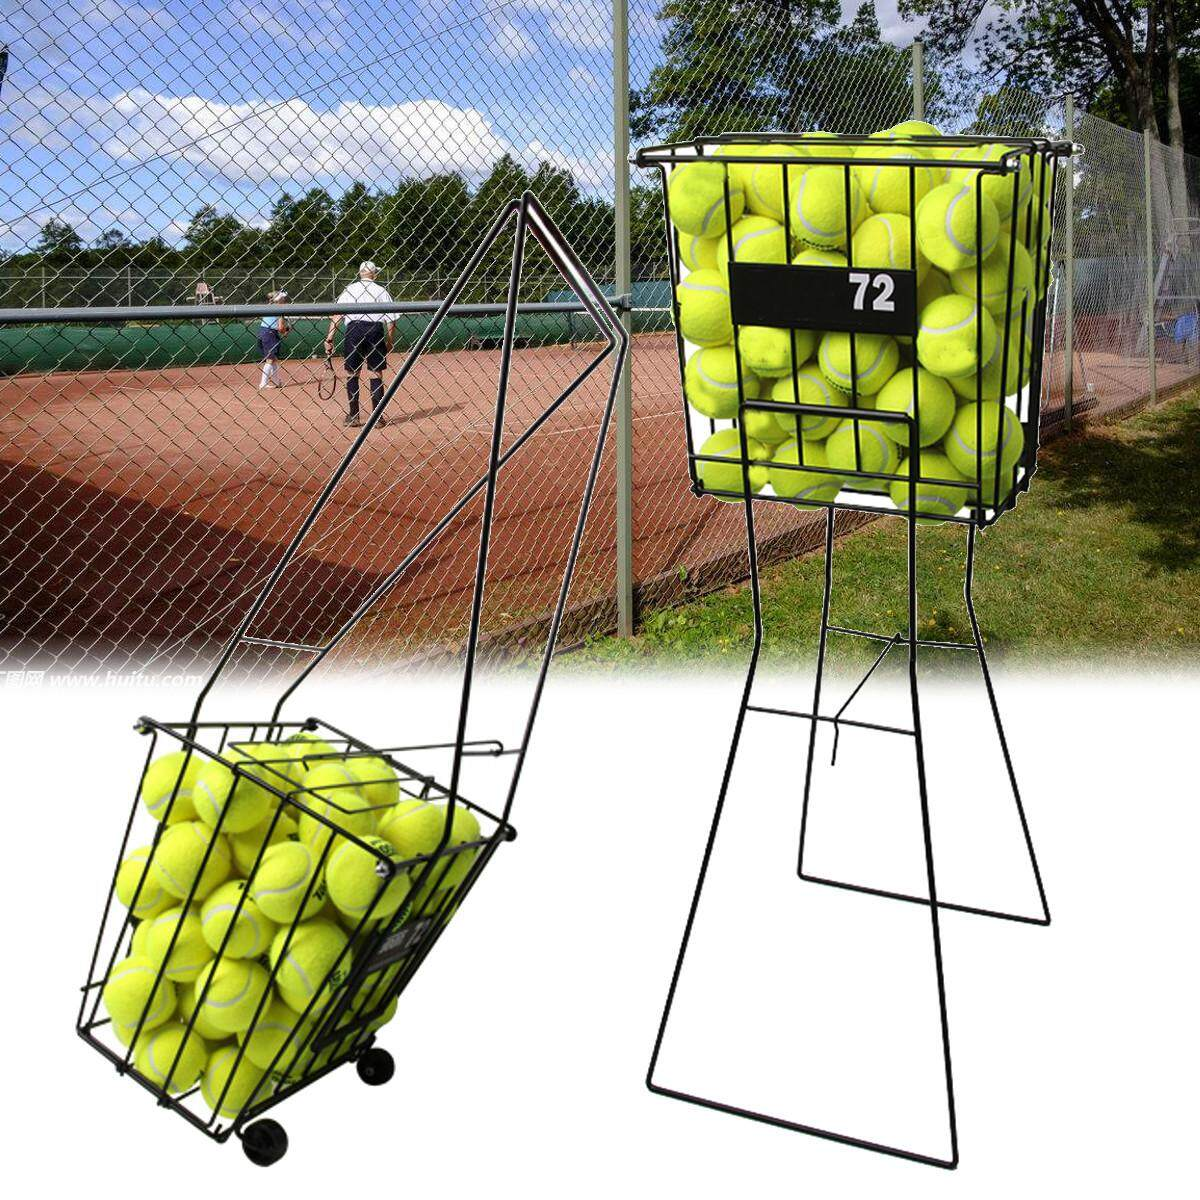 Tennis Sport Ball Pick Up Hopper Basket Portable Stand Storage Equipment By Freebang.